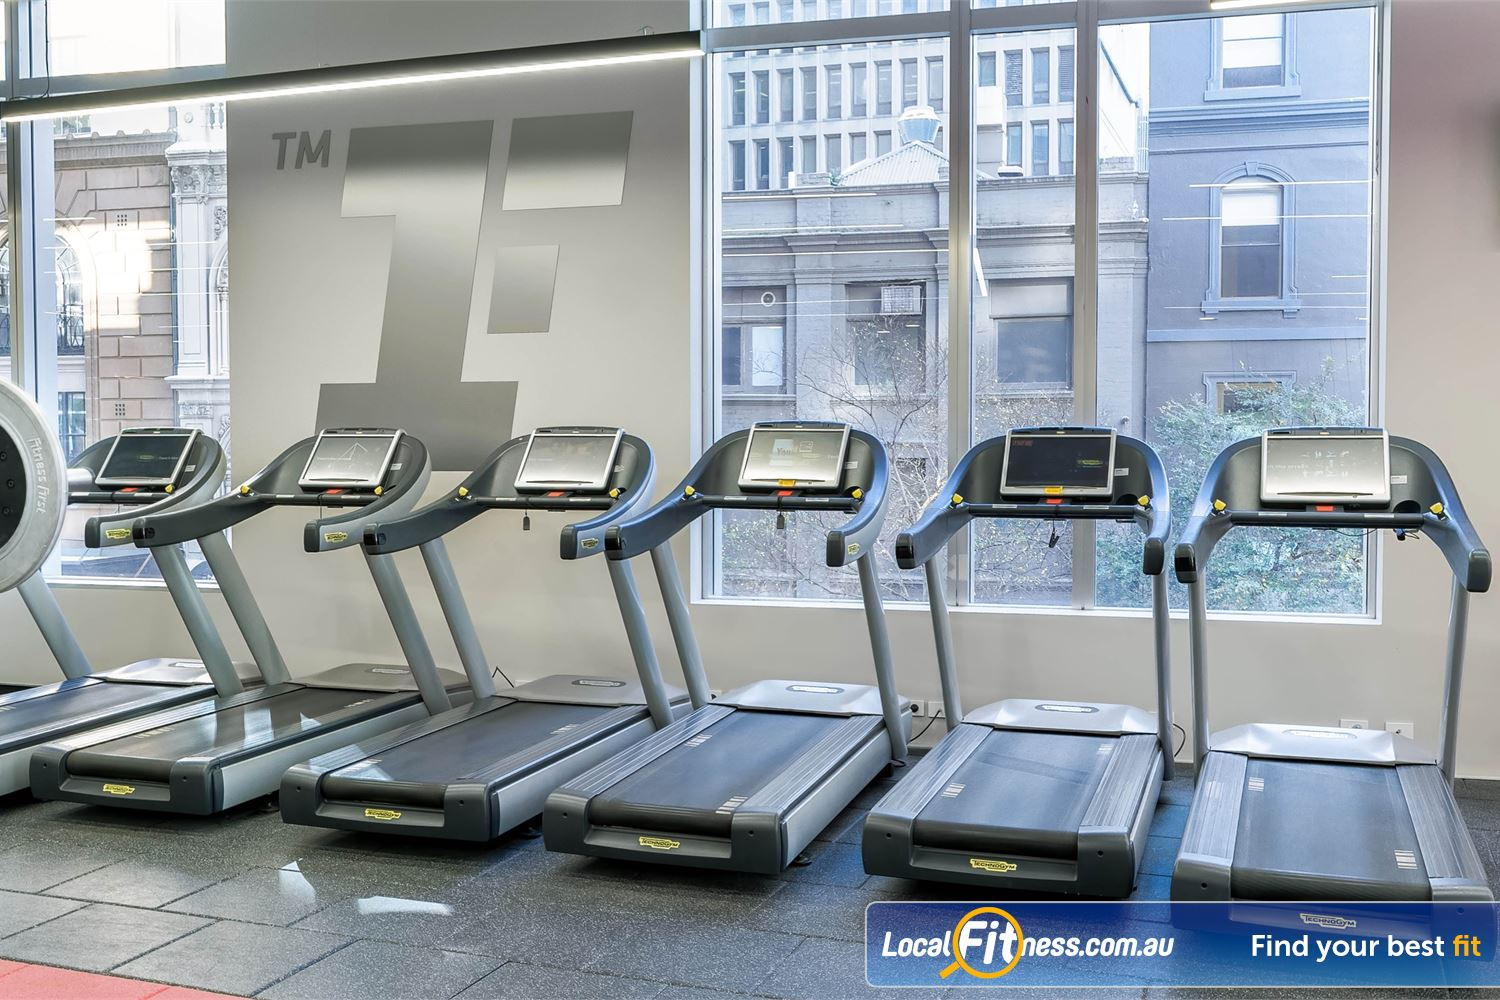 Fitness First Platinum Park St Near Strawberry Hills Our cardio area at Fitness First Park St overlooks the Sydney CBD streets.